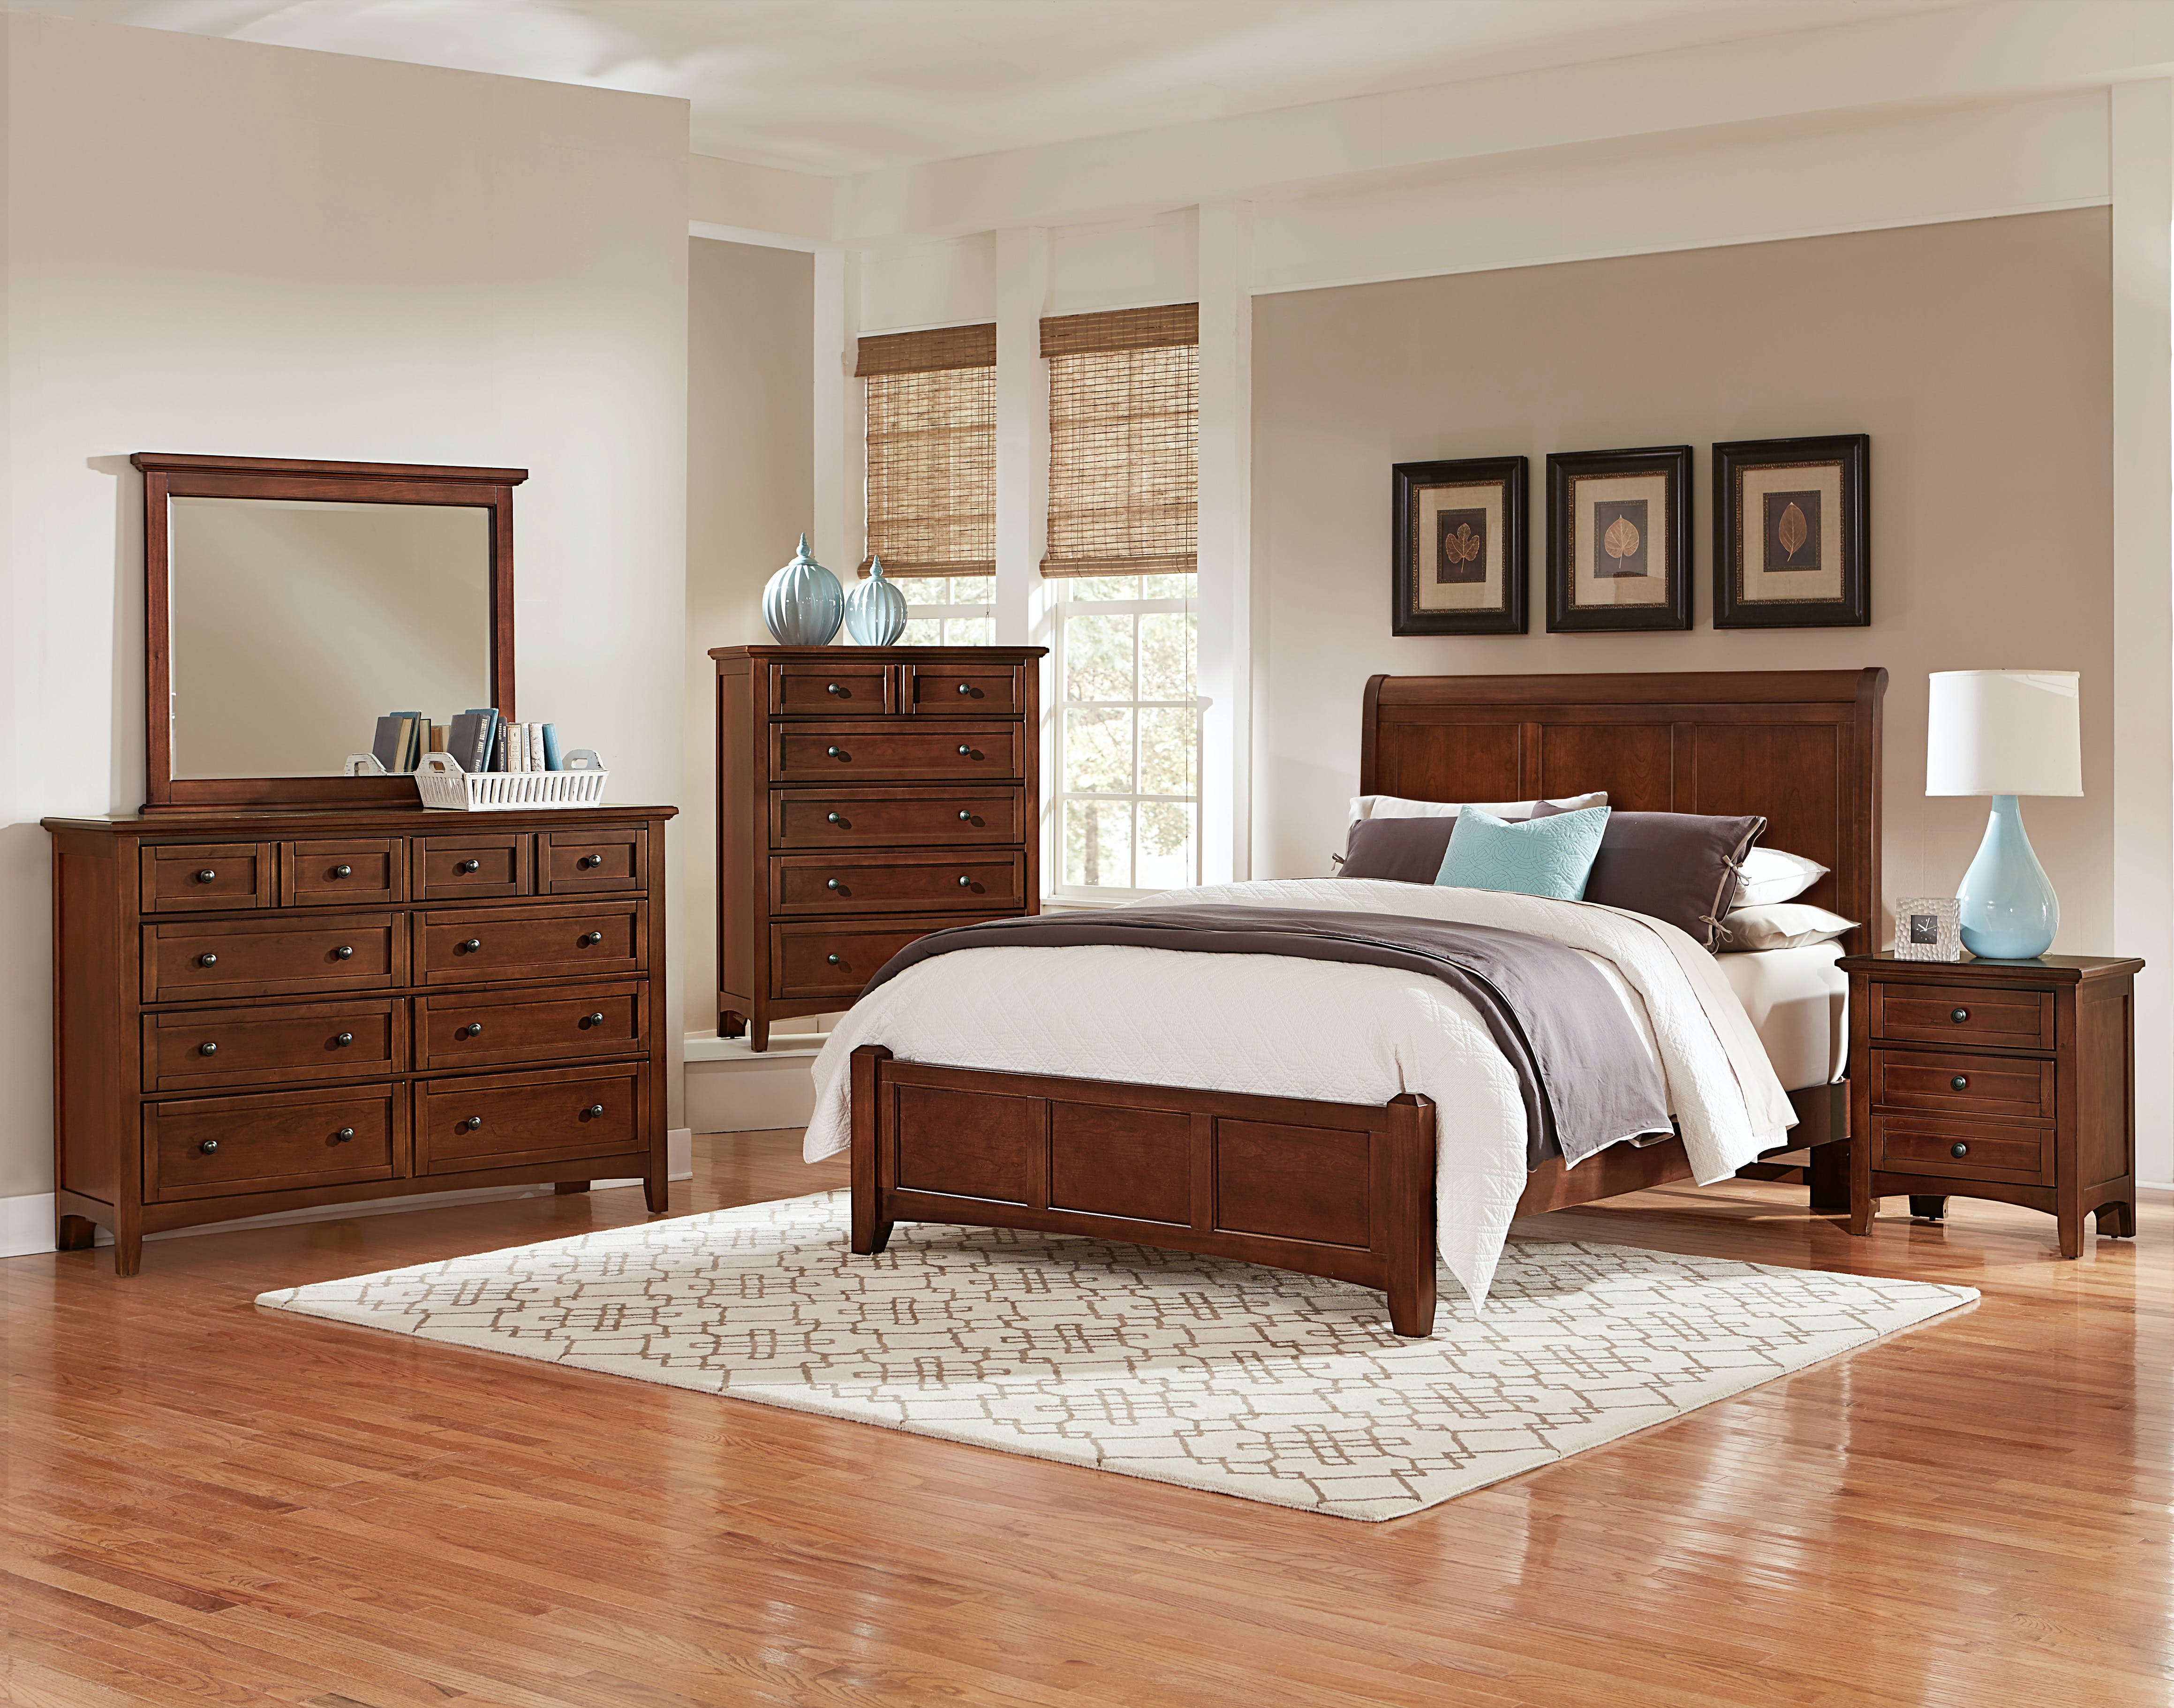 Vaughan Bassett Furniture Company Youth Queen Sleigh Bed Bb28 553 855 922 Woodcrafters Furniture